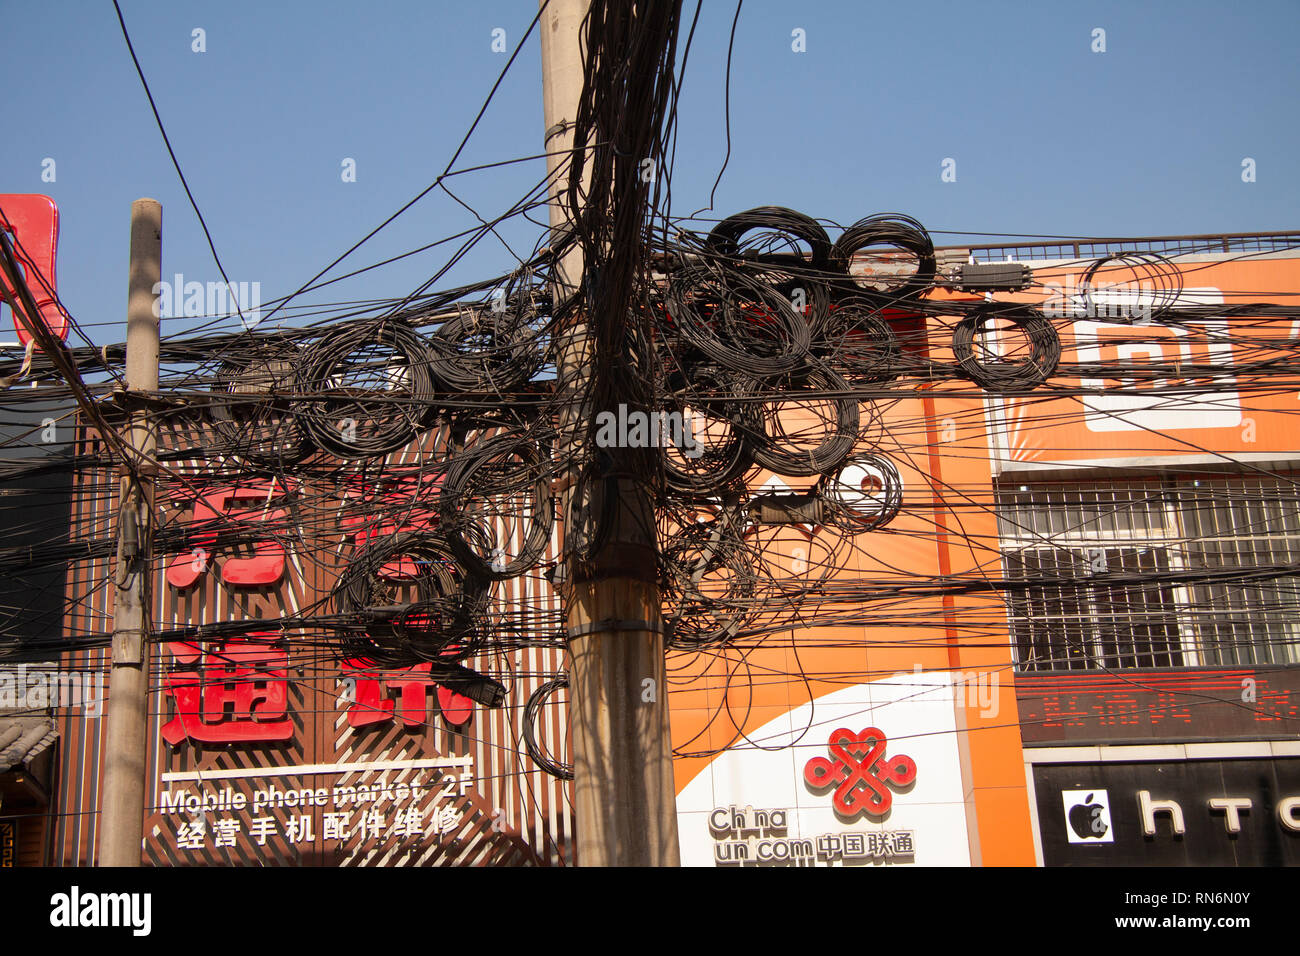 hight resolution of messy tangle of electric and telephone wires on street pole shanghai china december 29 2014